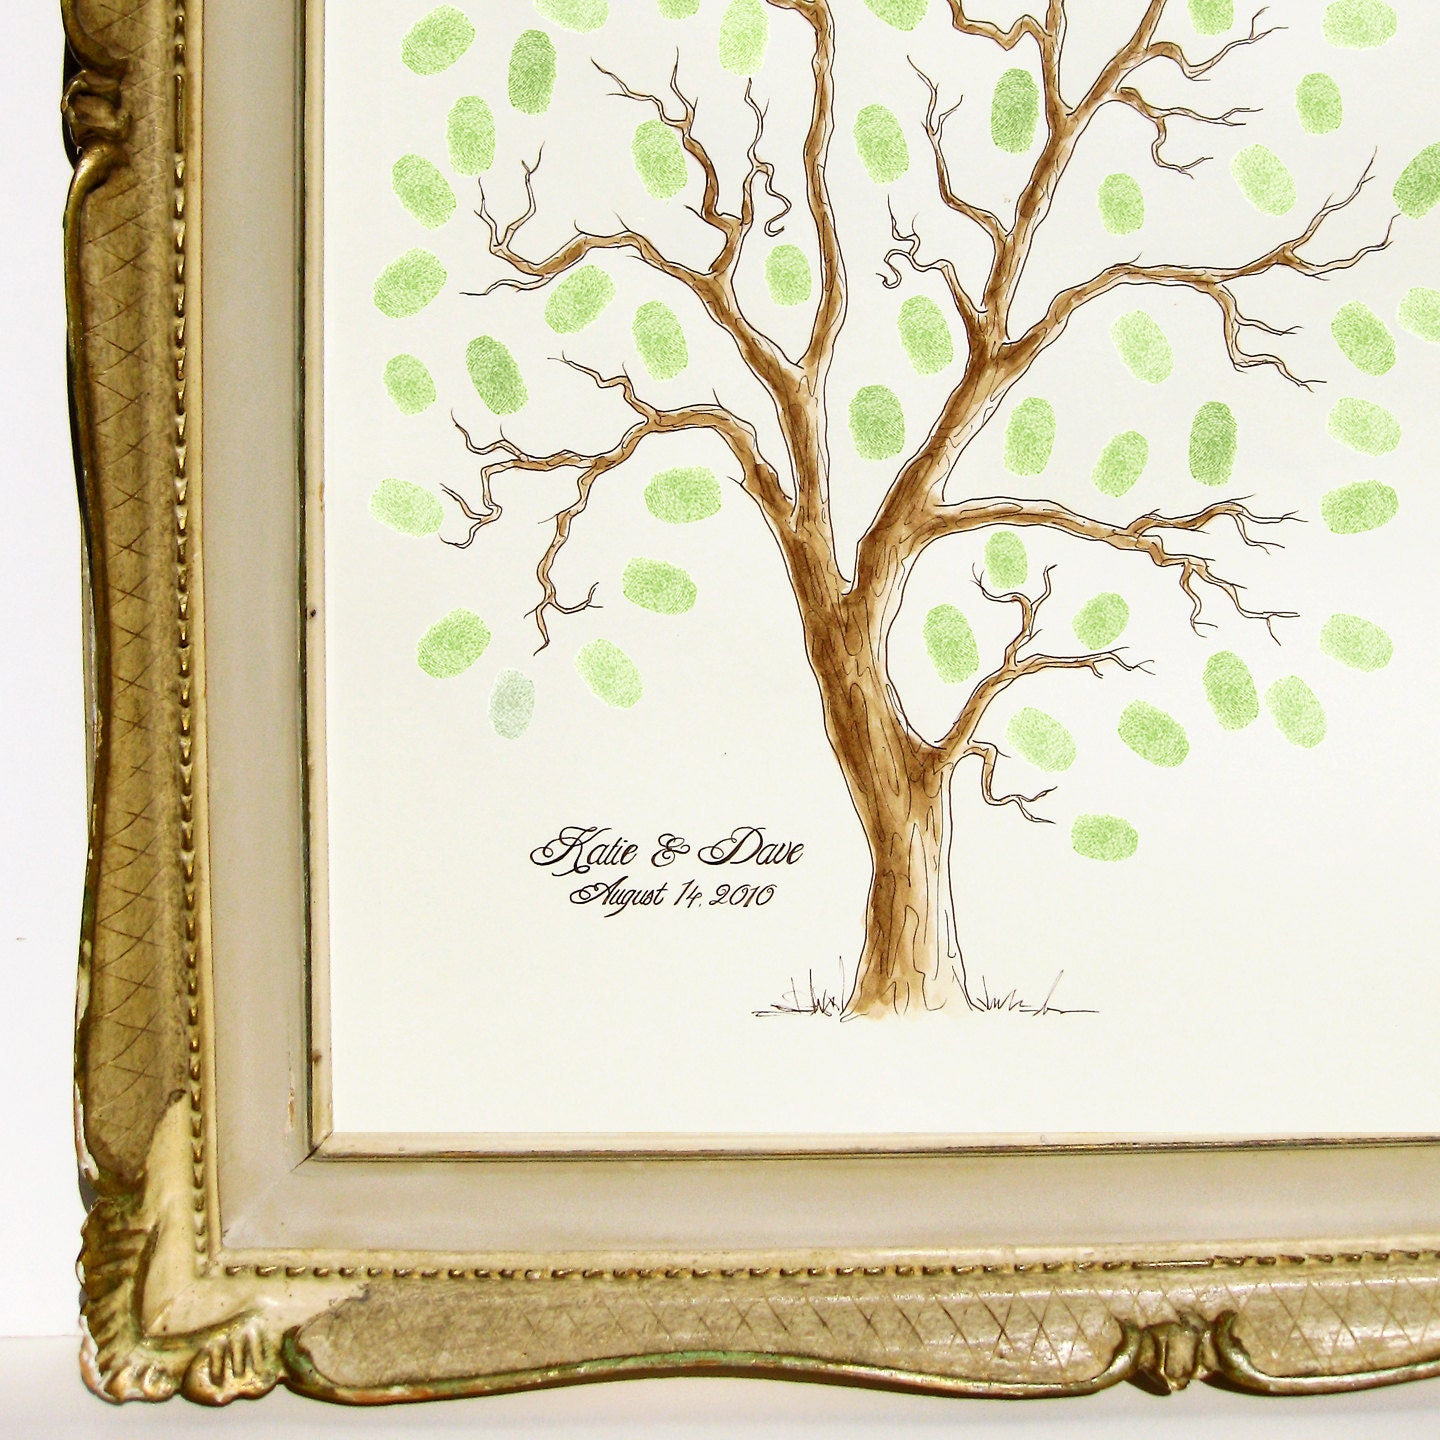 Wedding Tree Genealogy Chart By Melangeriedesign On Etsy: MEDIUM Wedding Tree Guest Book Family Tree 16 X 20